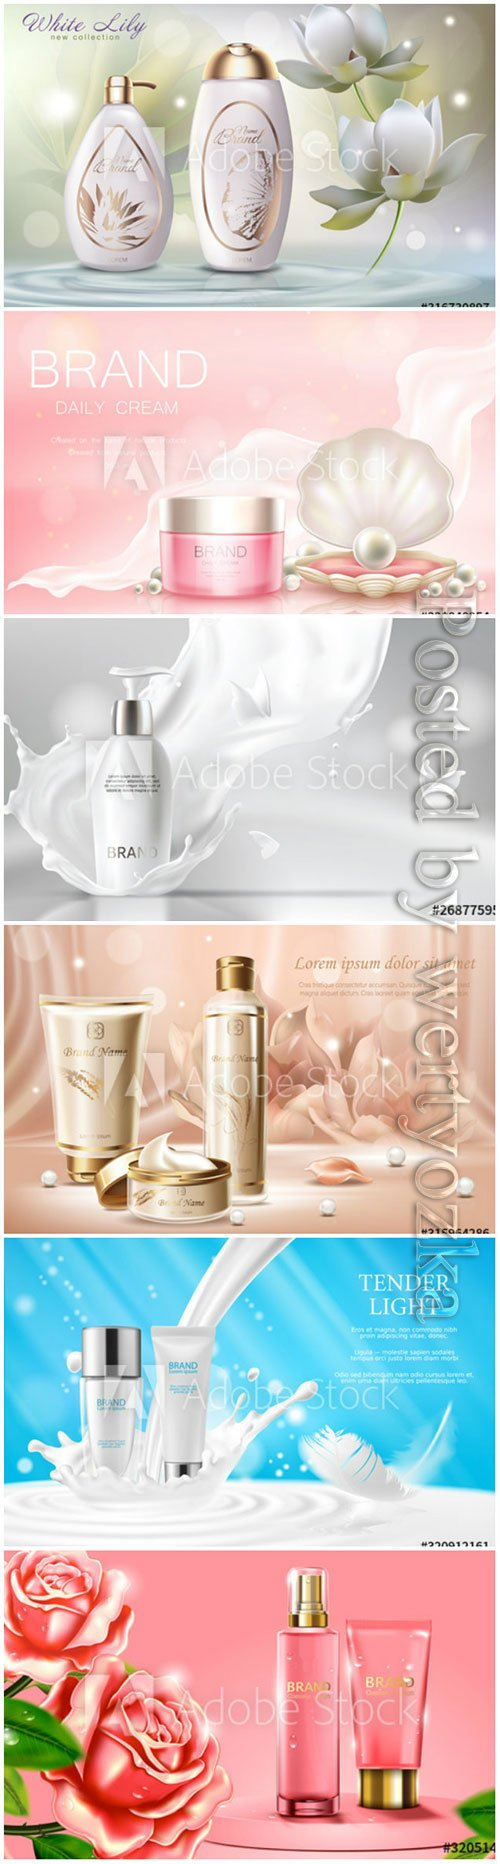 Cosmetics advertising banner vector template